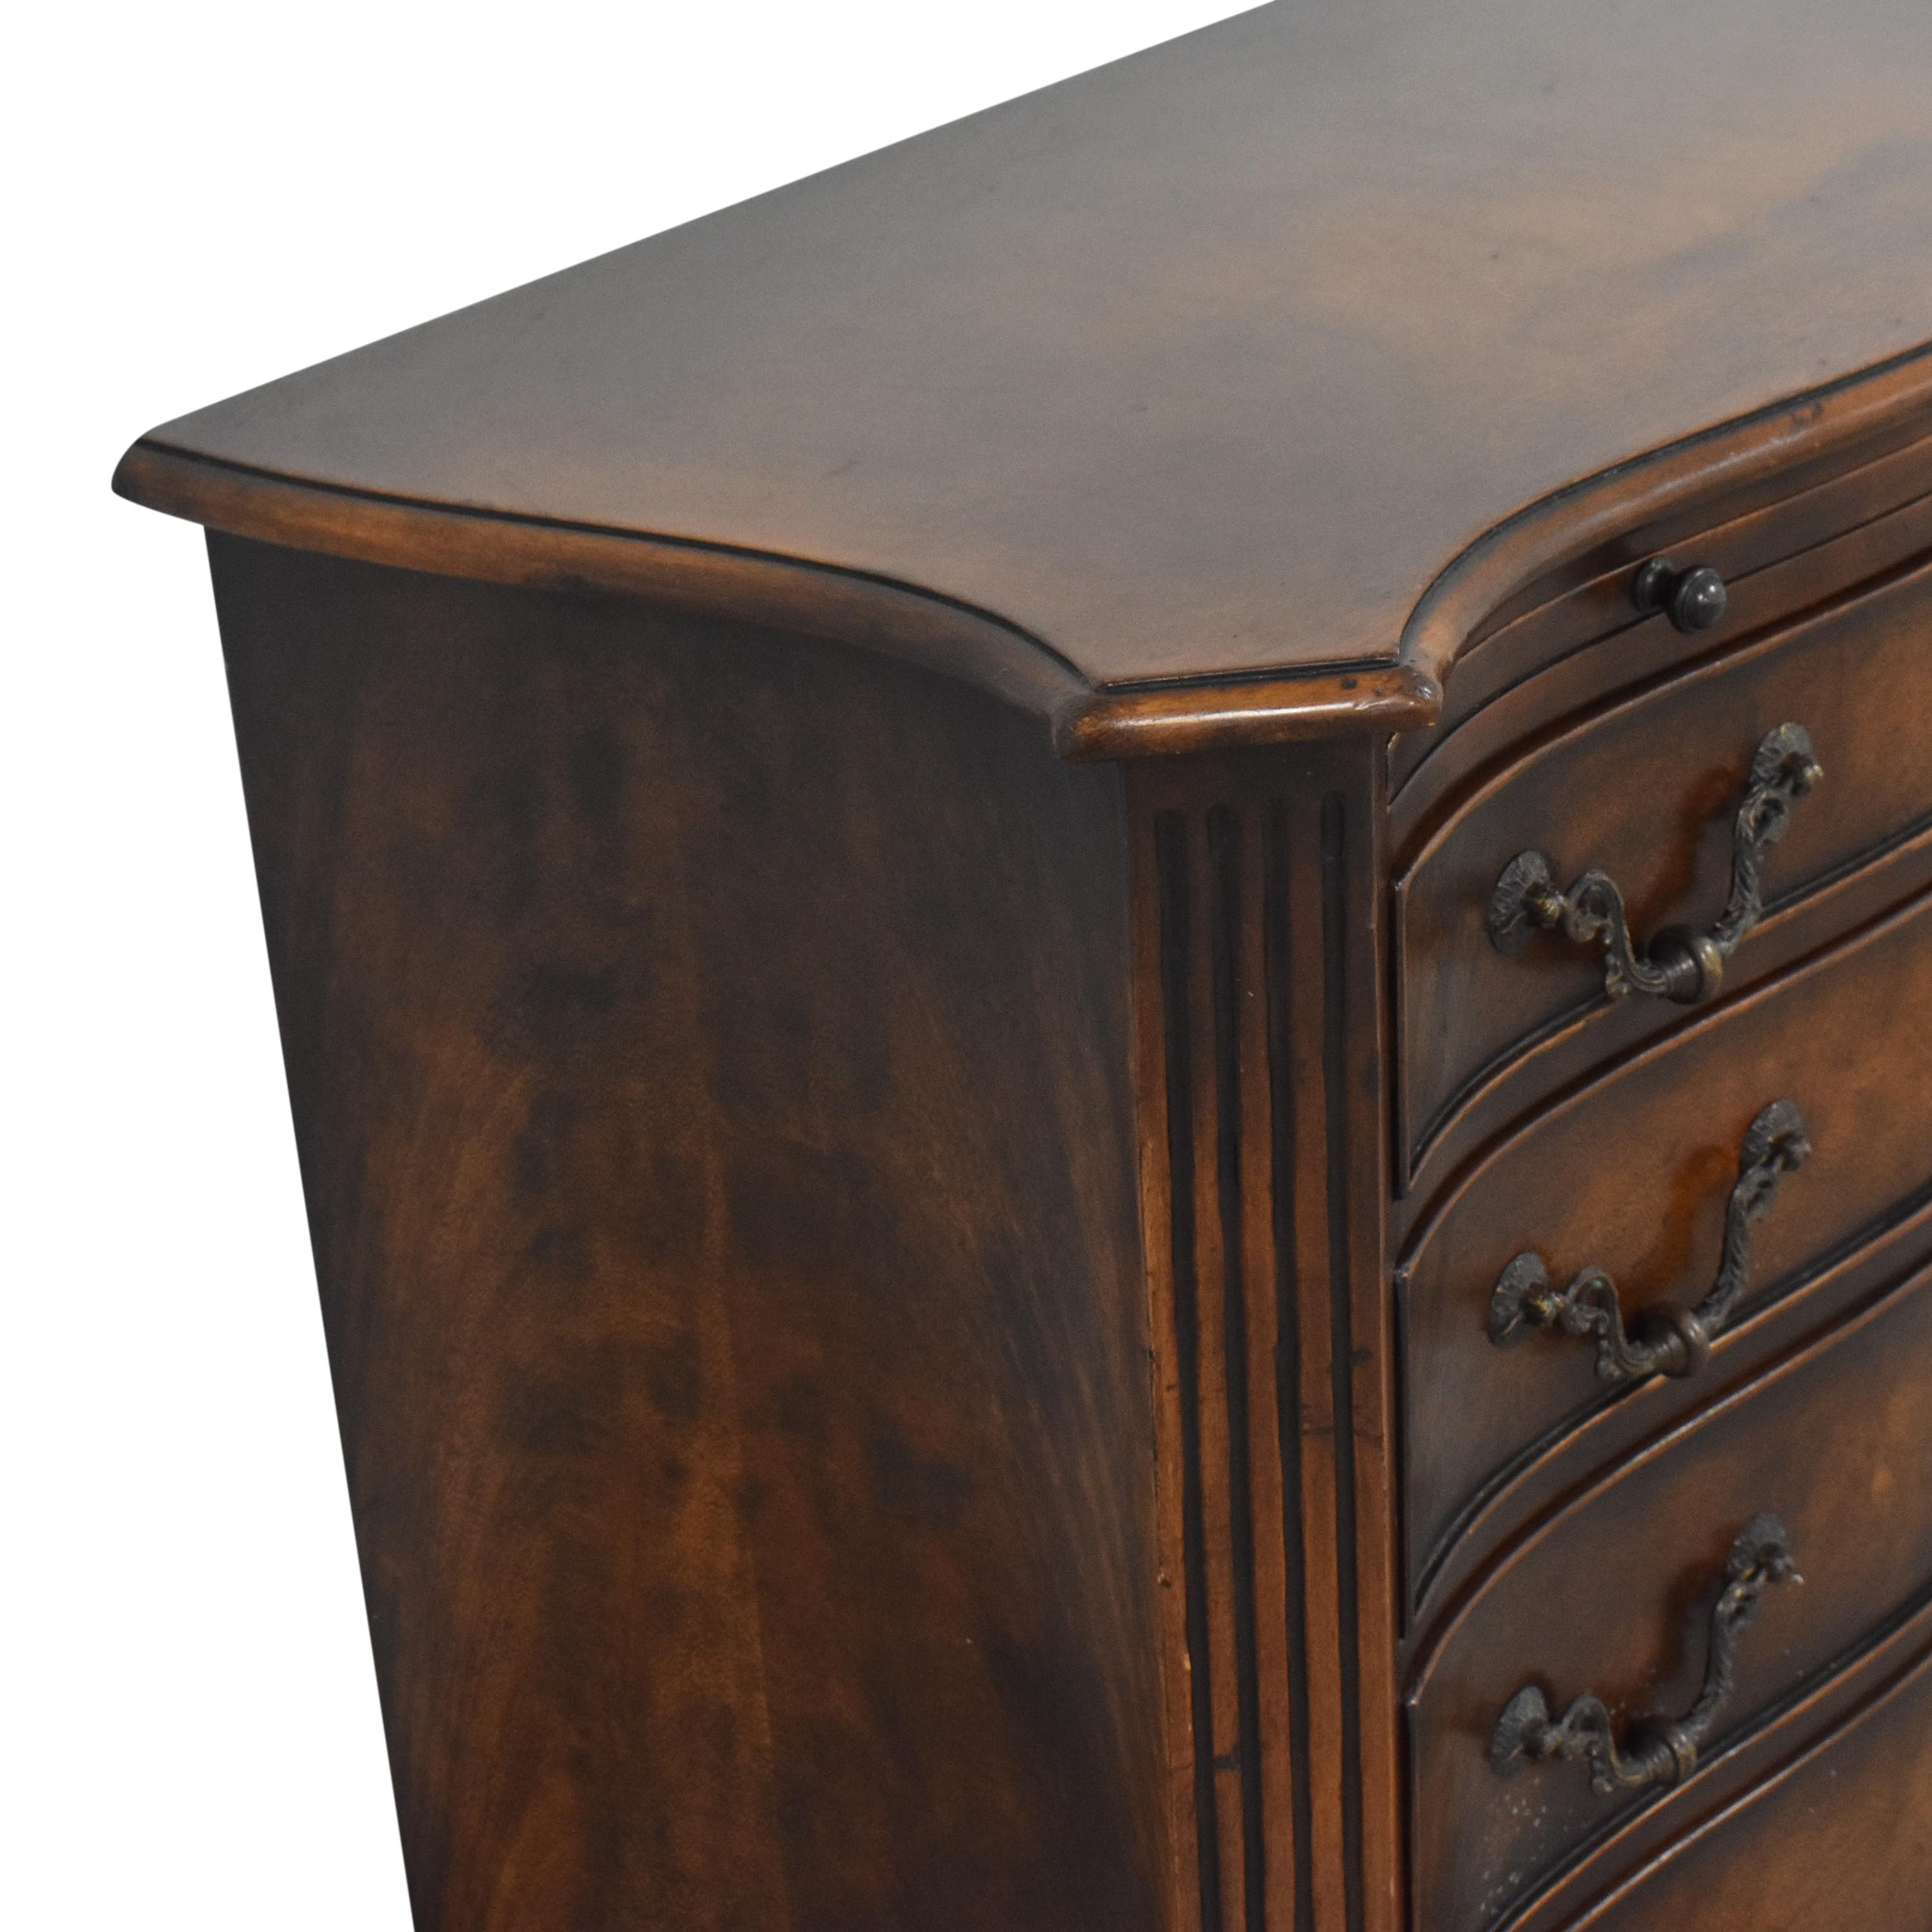 Four Drawer Chest with Extension Storage